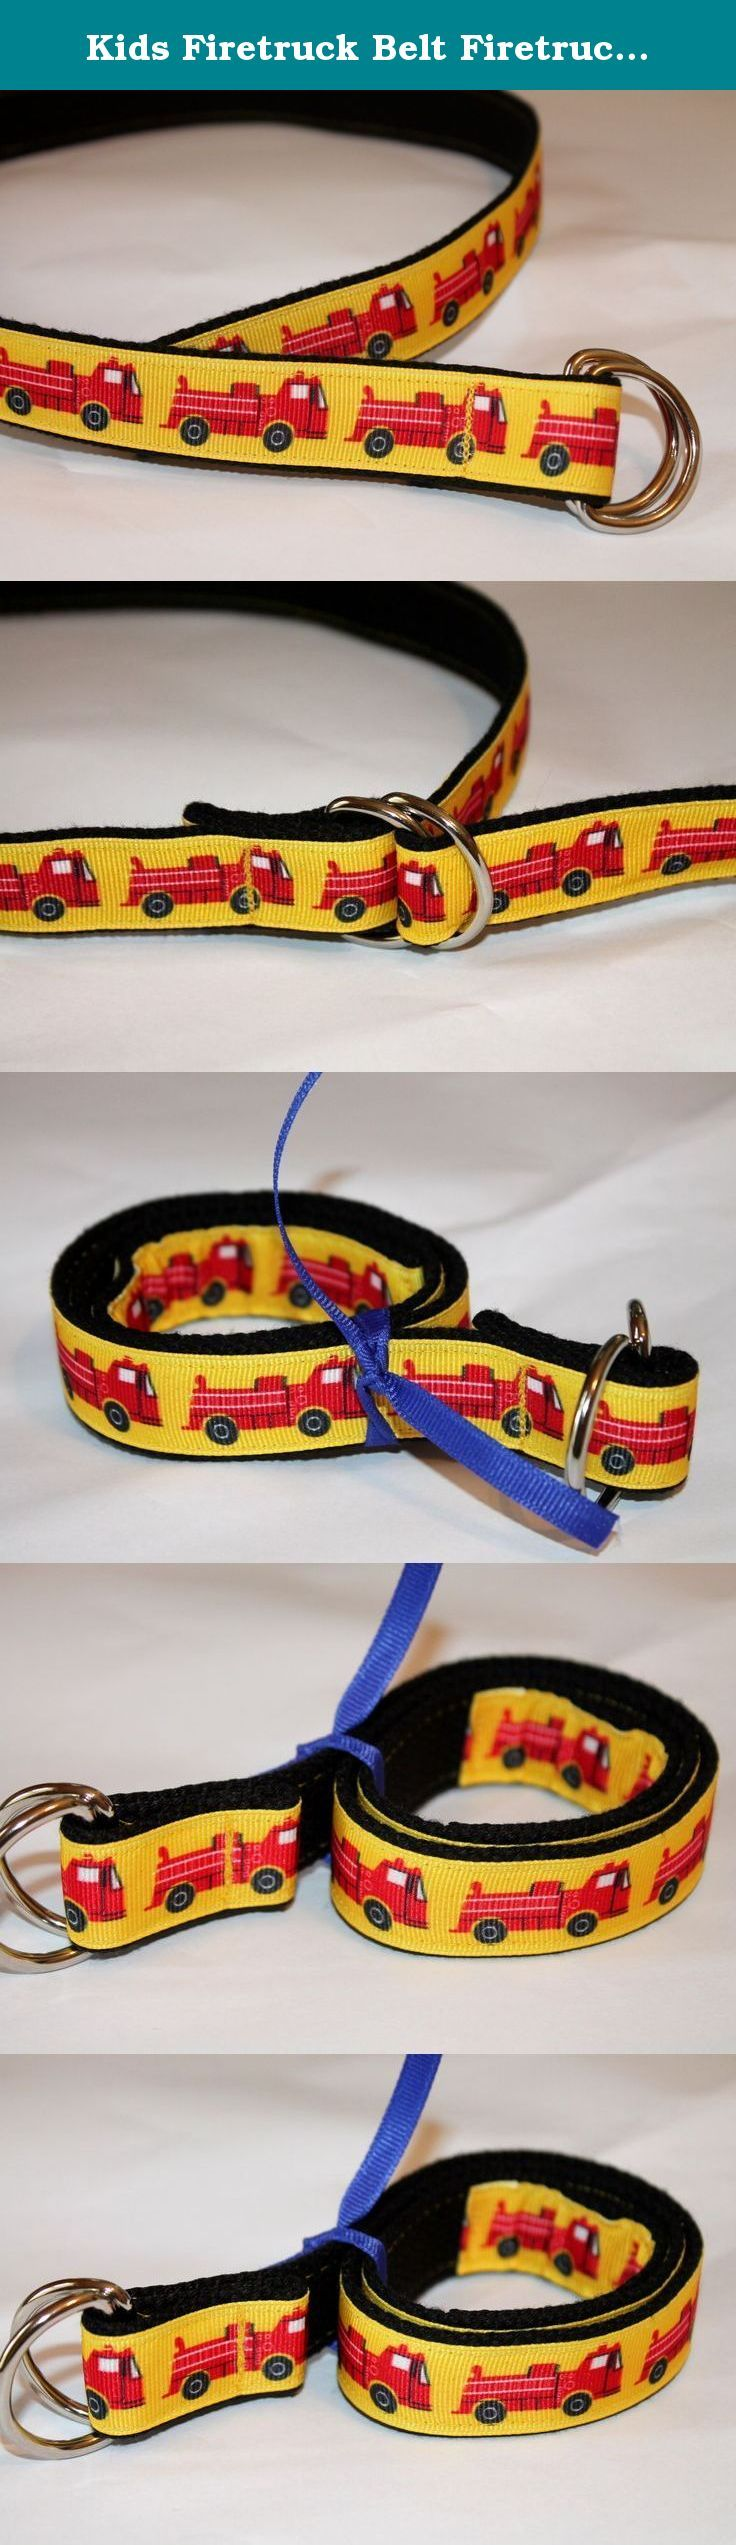 Kids Firetruck Belt Firetruck Belt Fire Engine Belt Boys D Ring Belt Kids Yellow Belt Kids Fireman Birthday Belt. Firetrucks for boys of all sizes. I have decided to add more boys belt to the collection since my 3 sons are always asking for their own. This belt can worn over clothes or just to hold up those baggy pants. Belt has black webbing with firetruck ribbon stitched to it. Ribbon is wrapped around the end so it shows when worn.